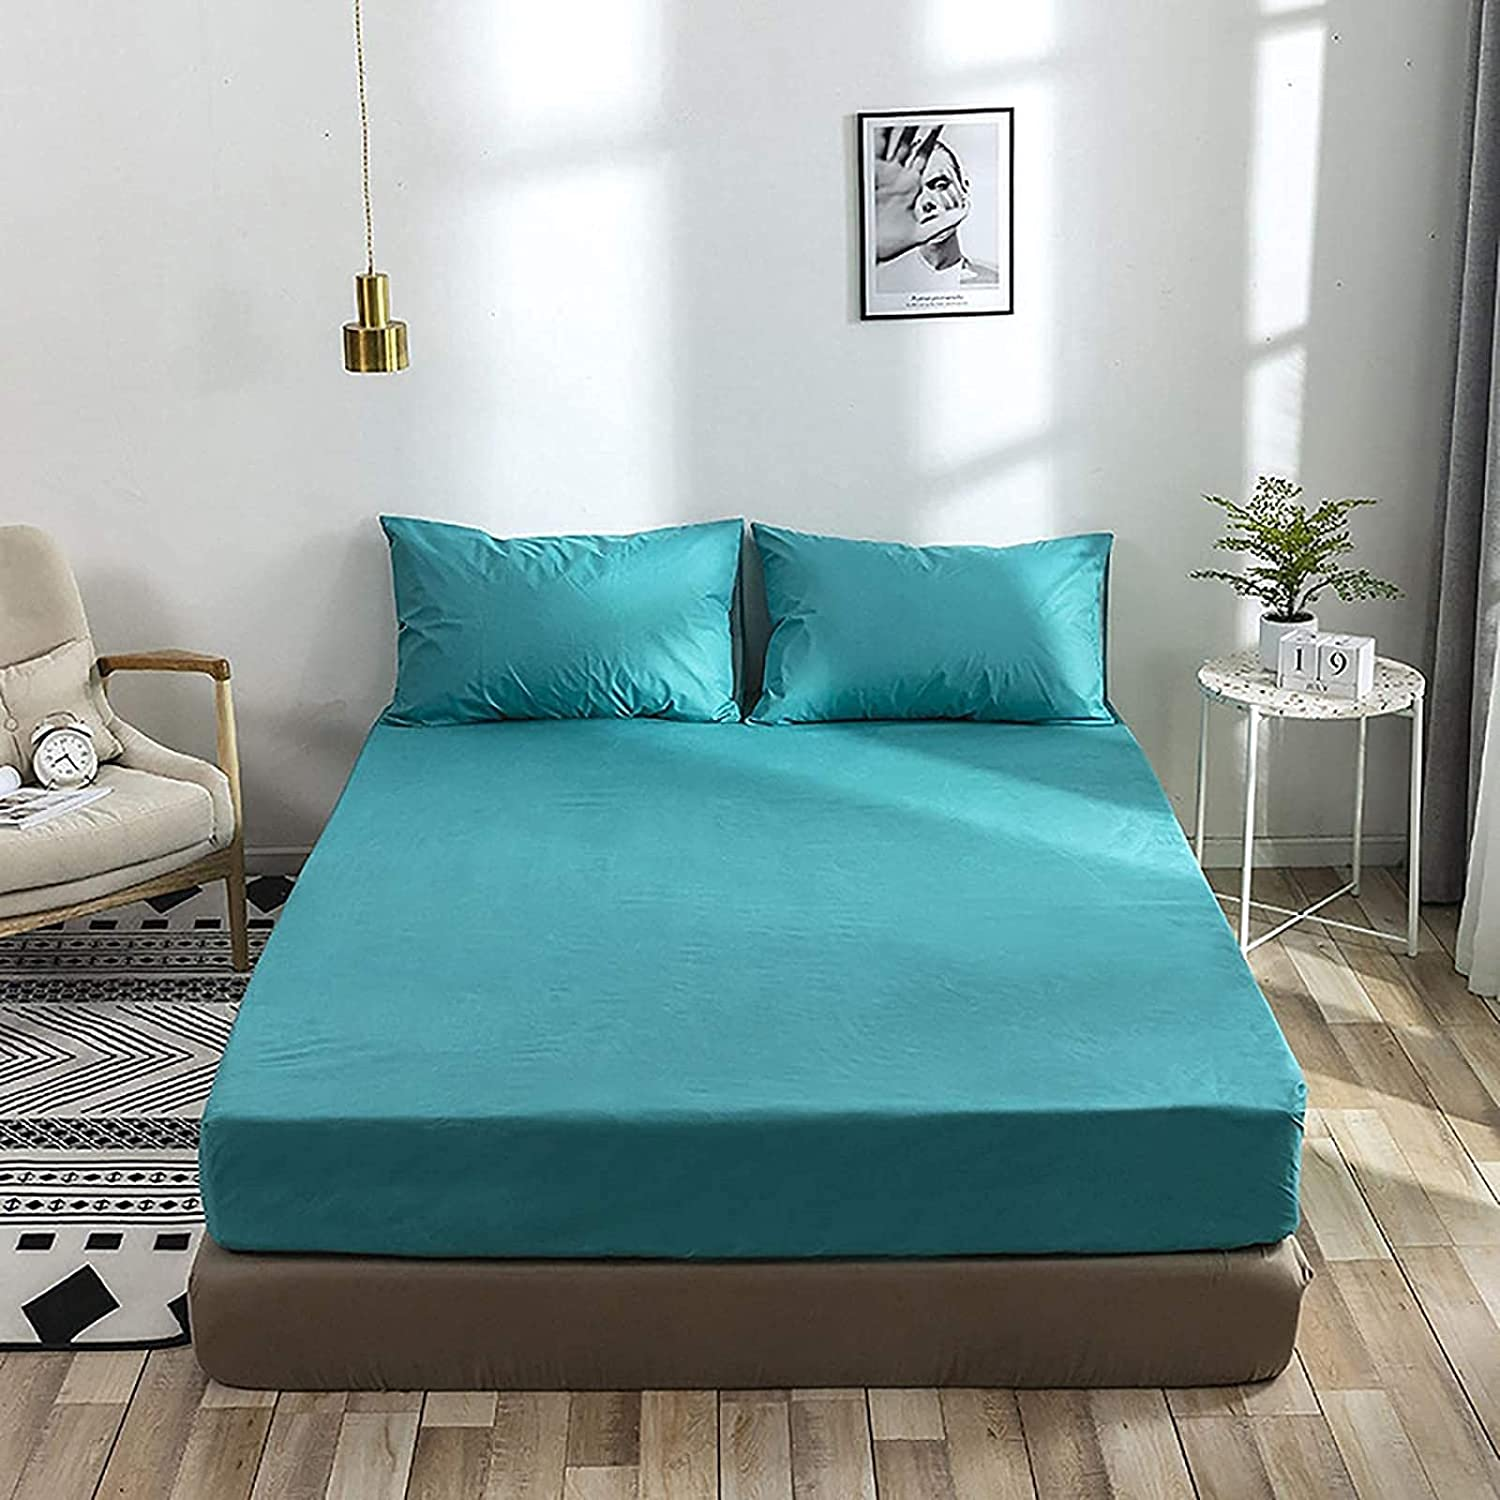 Challenge the lowest price WHCQ Quantity limited Mattress Cover Full Polyester Protector 100% Lig